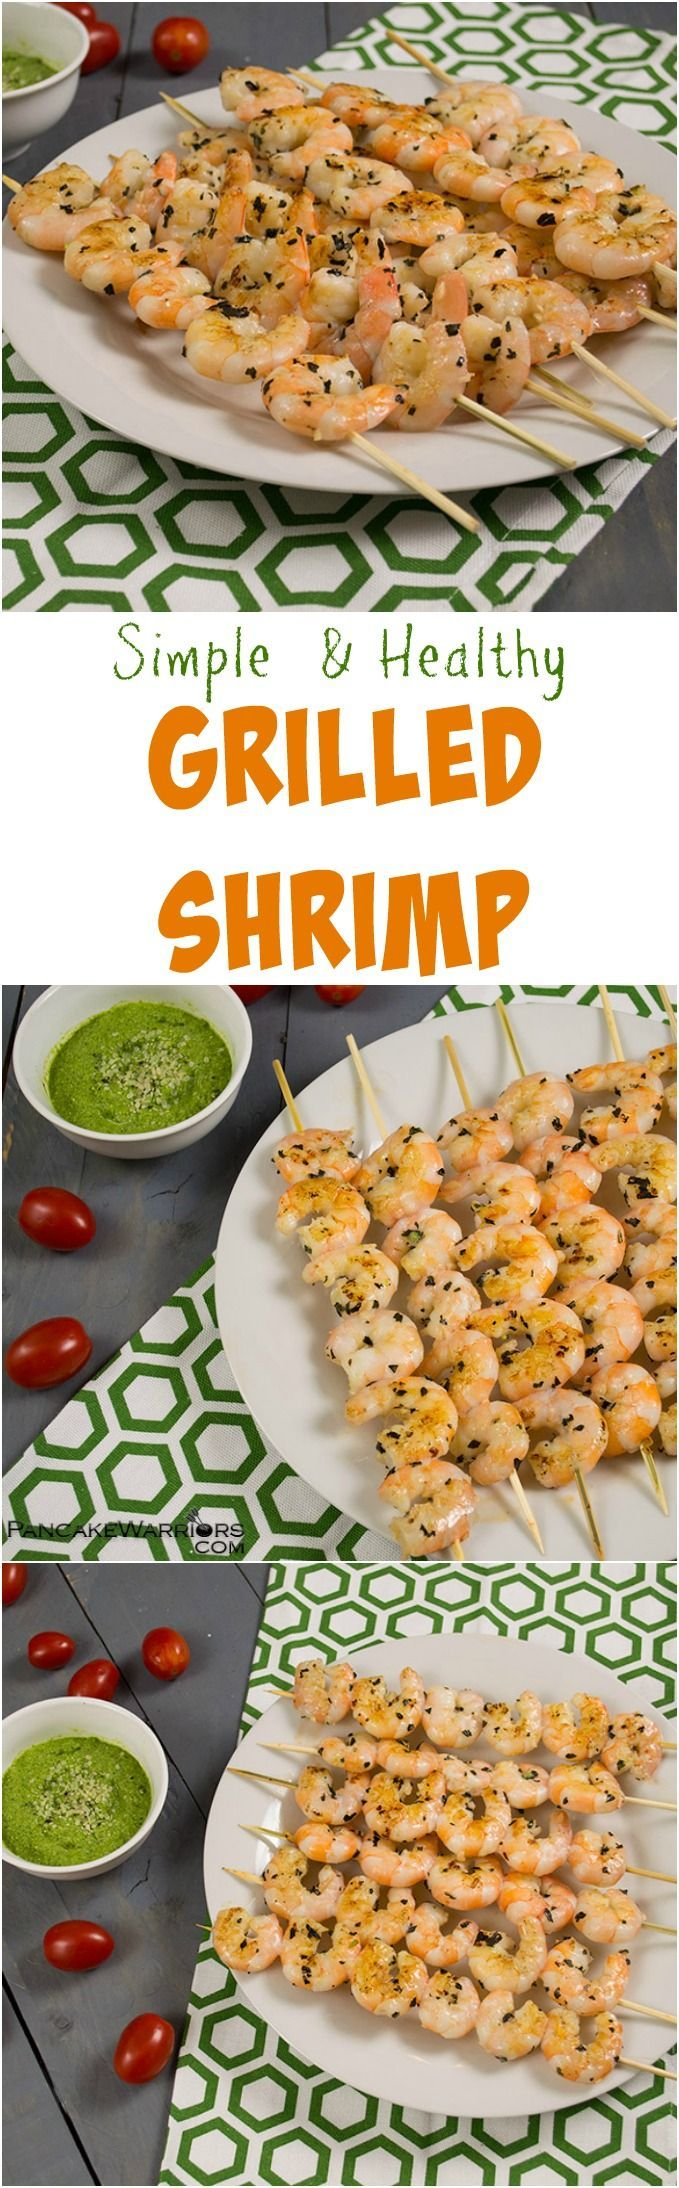 grilled shrimp recipe. This is the perfect, healthy option for cookouts! Enjoy with healthy basil pesto for dipping! This is a family favorite, so be sure to make more than you think you need.